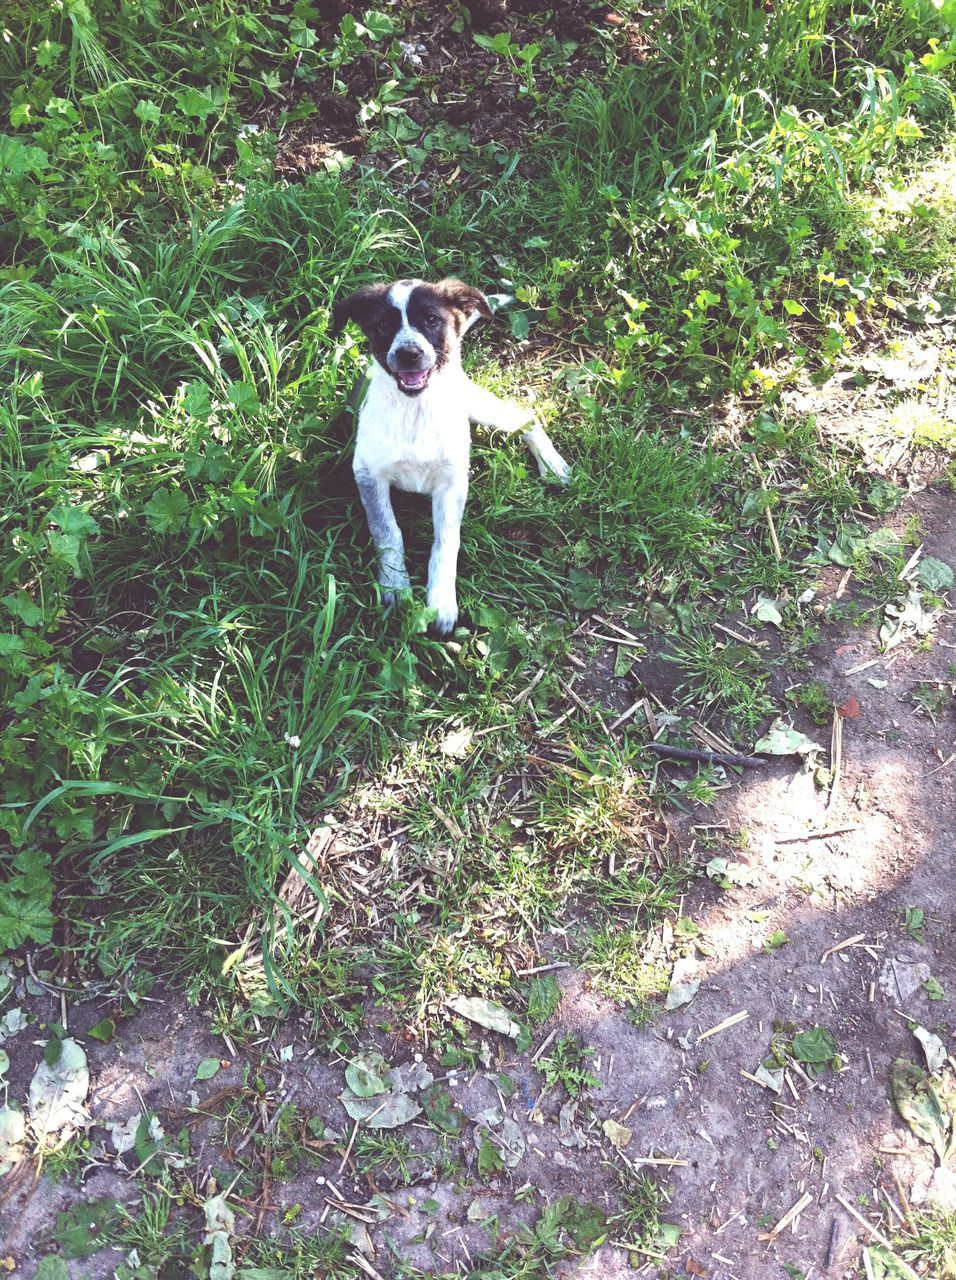 dog, pets, domestic animals, mammal, one animal, animal themes, outdoors, day, field, no people, nature, grass, tree